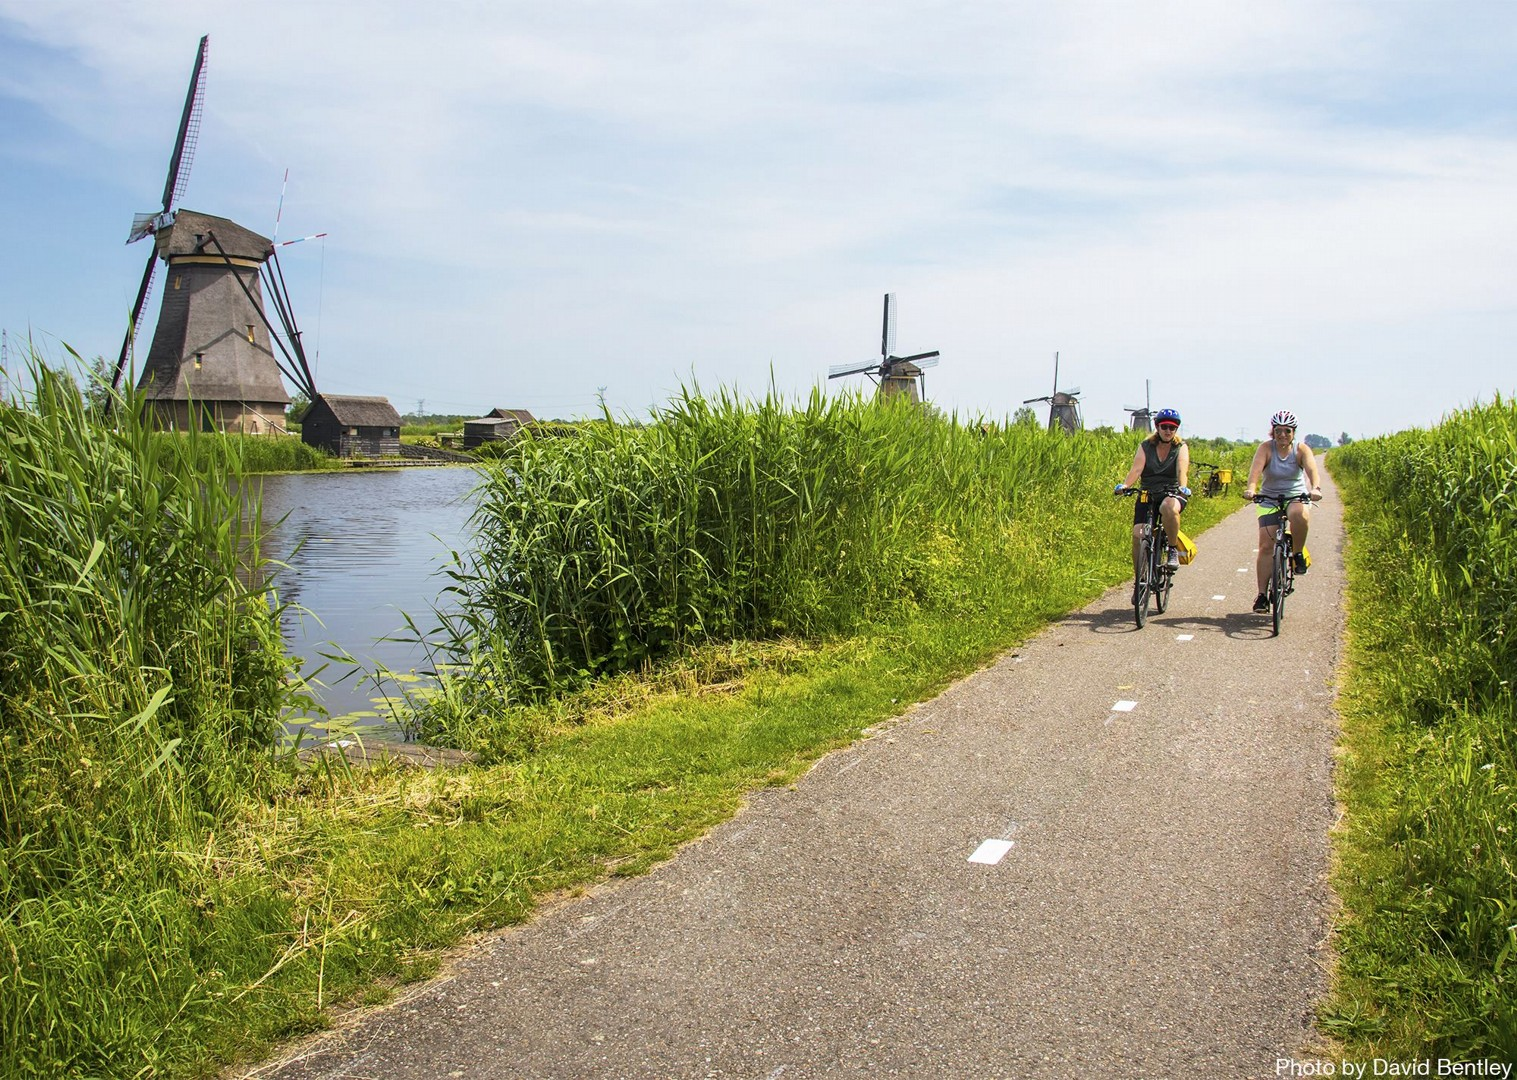 2018 Holland Bike and Barge_0300a.jpg - Holland - Windmills and Golden Beaches - Bike and Barge Holiday - Leisure Cycling